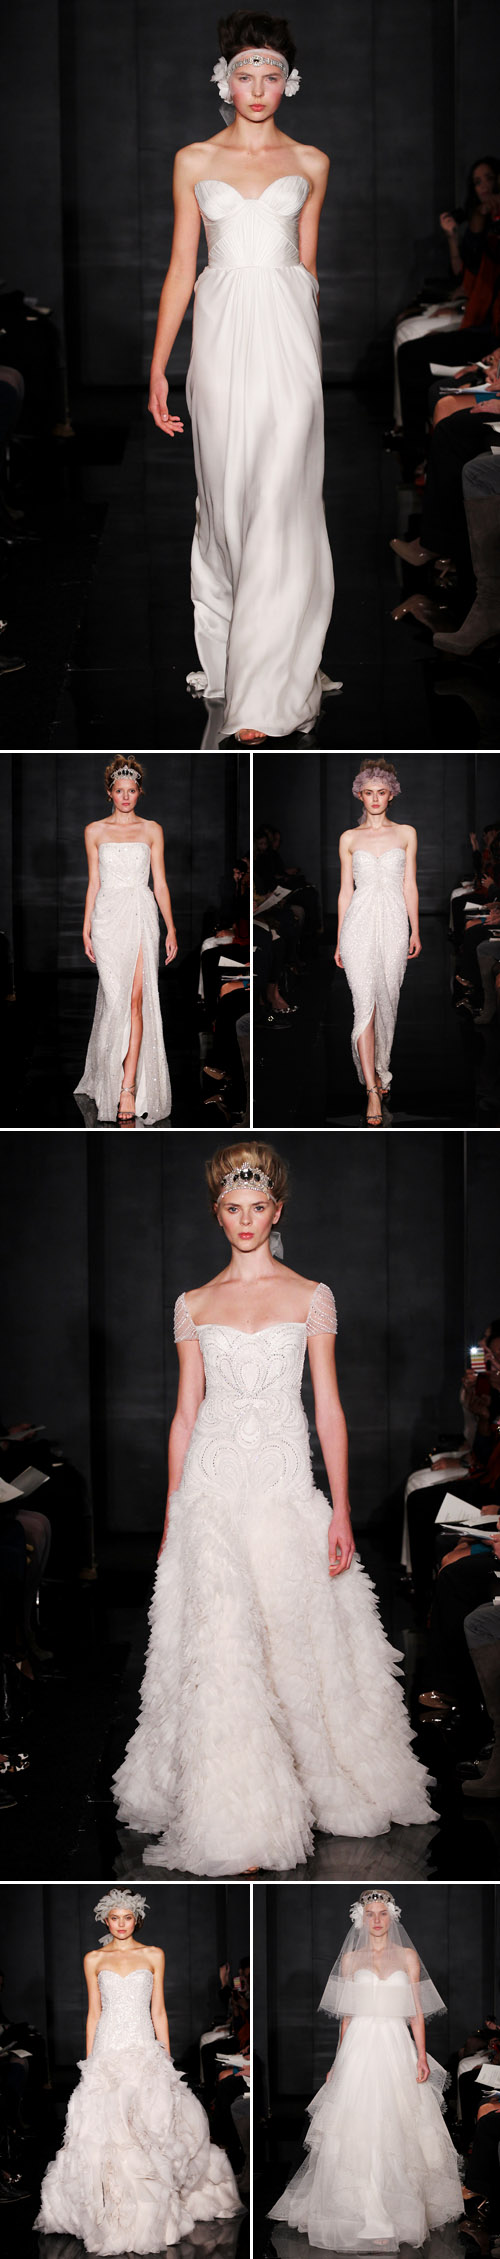 dramatic high fashion wedding dresses from Reem Acra Fall 2012 bridal collection